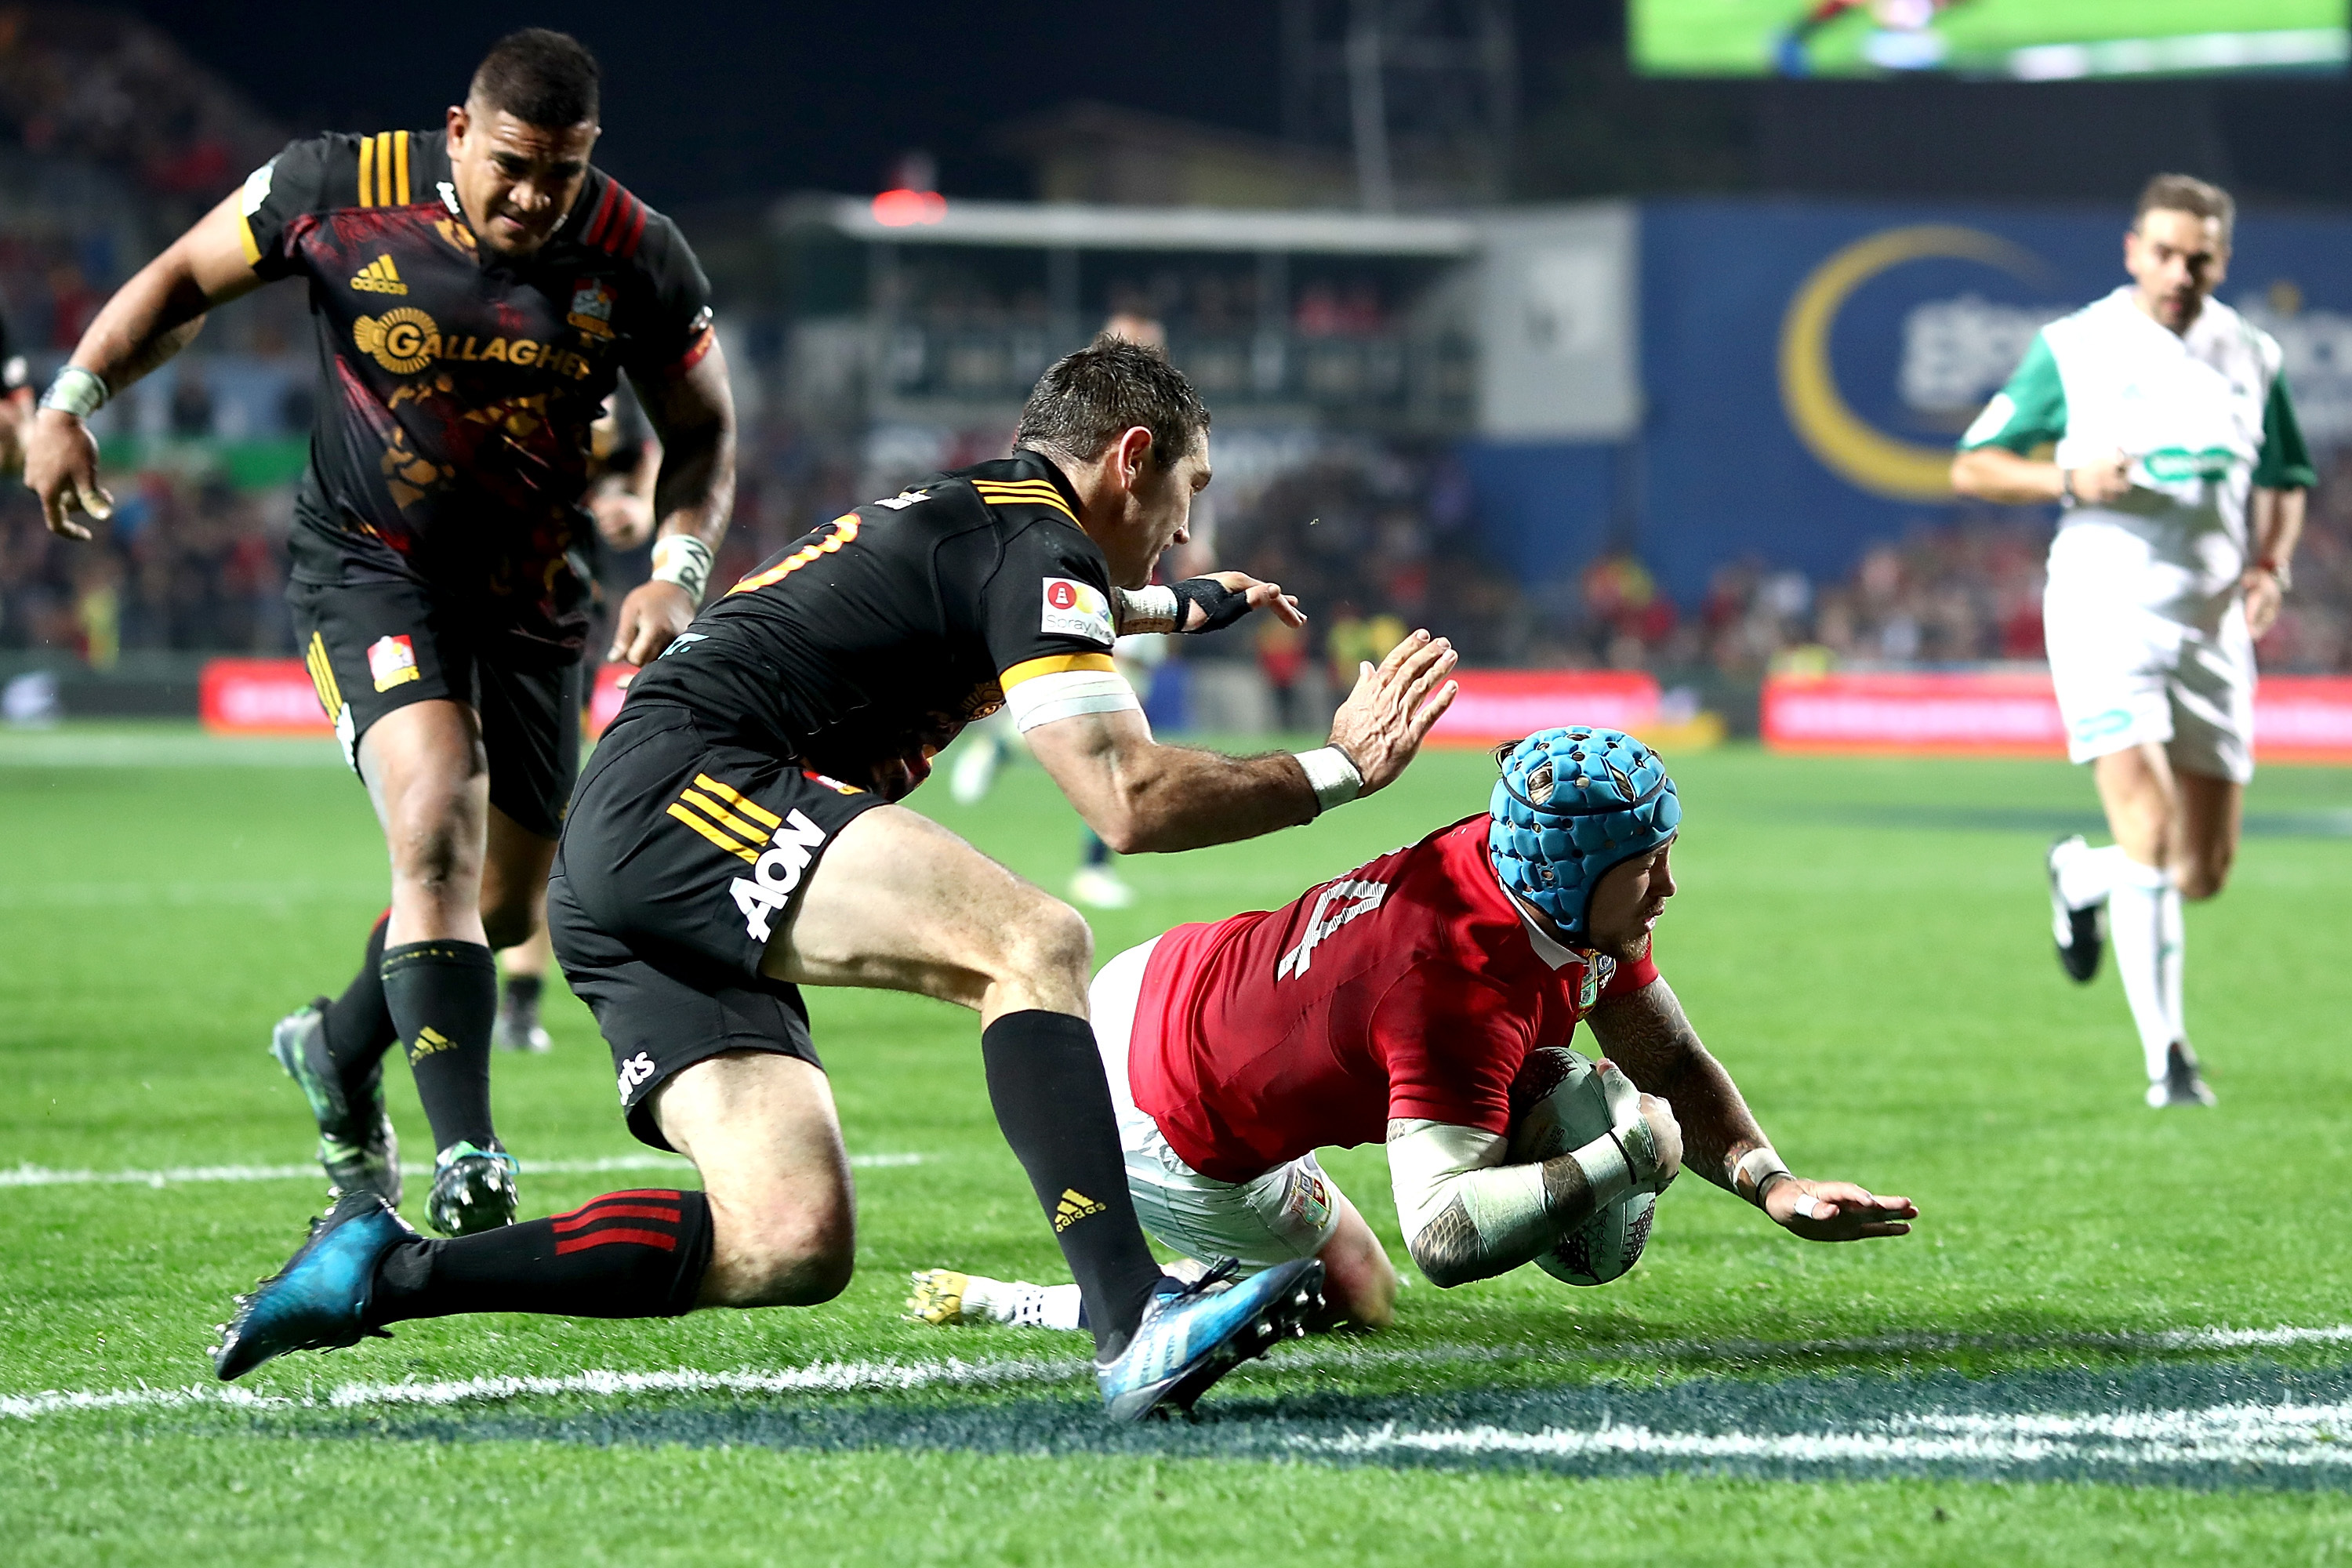 Jack Nowell scores his second try for the Lions in defeating the Chiefs in Hamilton.